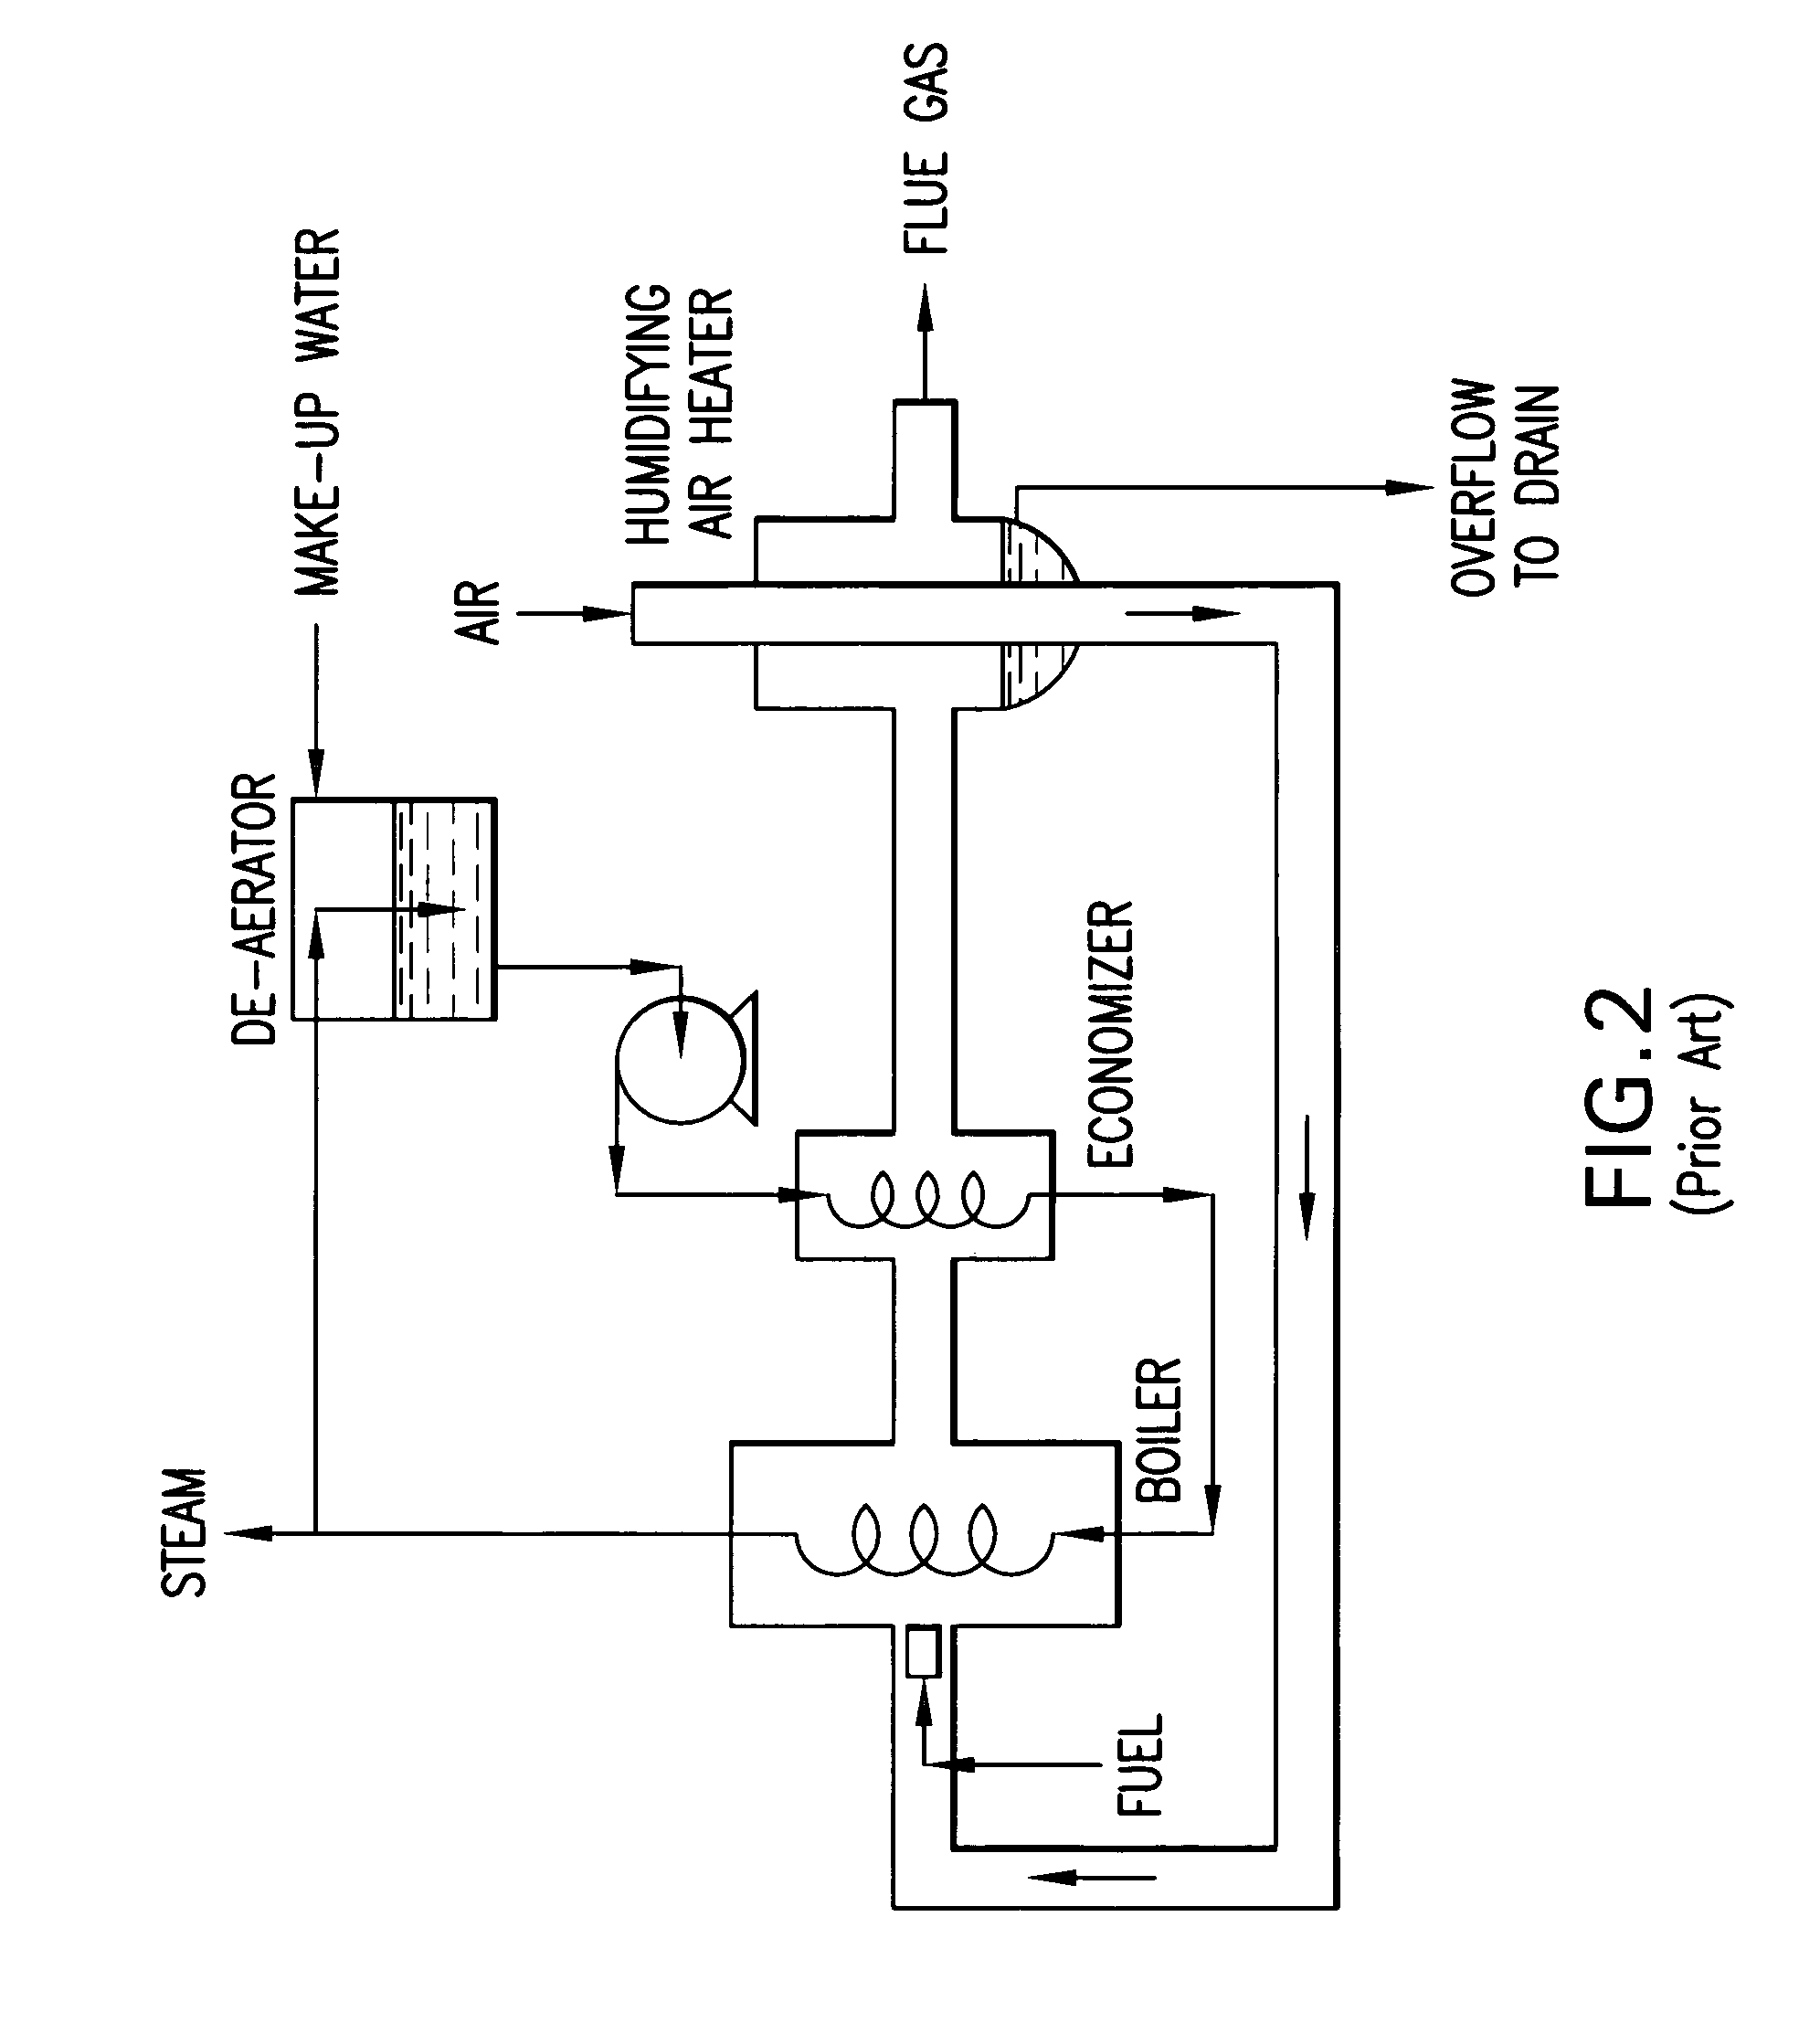 Patent US Method and apparatus for enhanced heat recovery